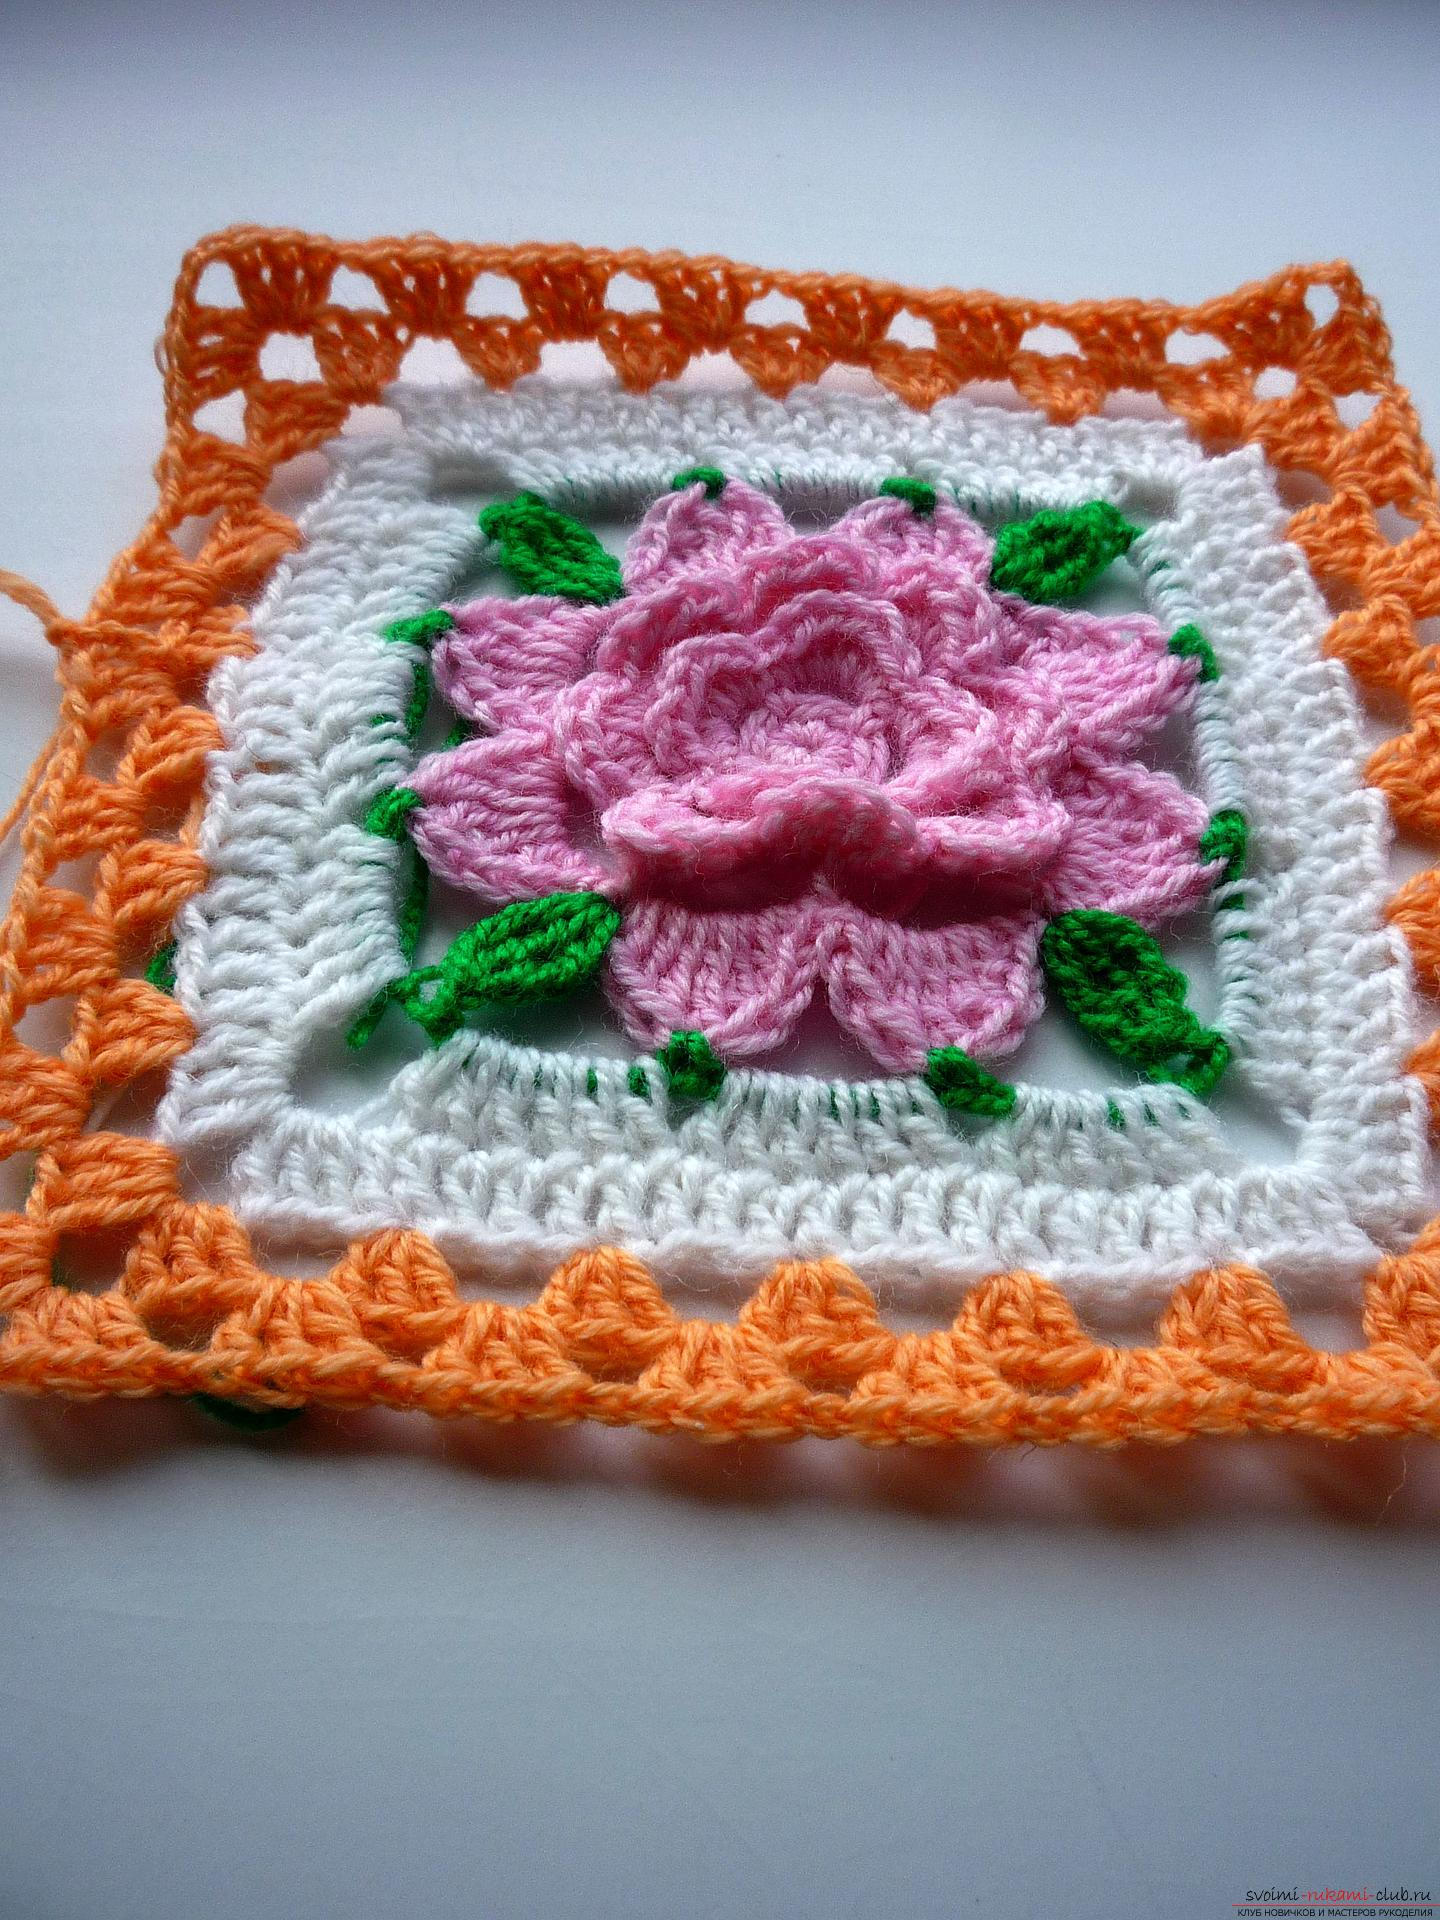 This master class of crocheting contains a crochet flower scheme for a plaid .. Photo # 23